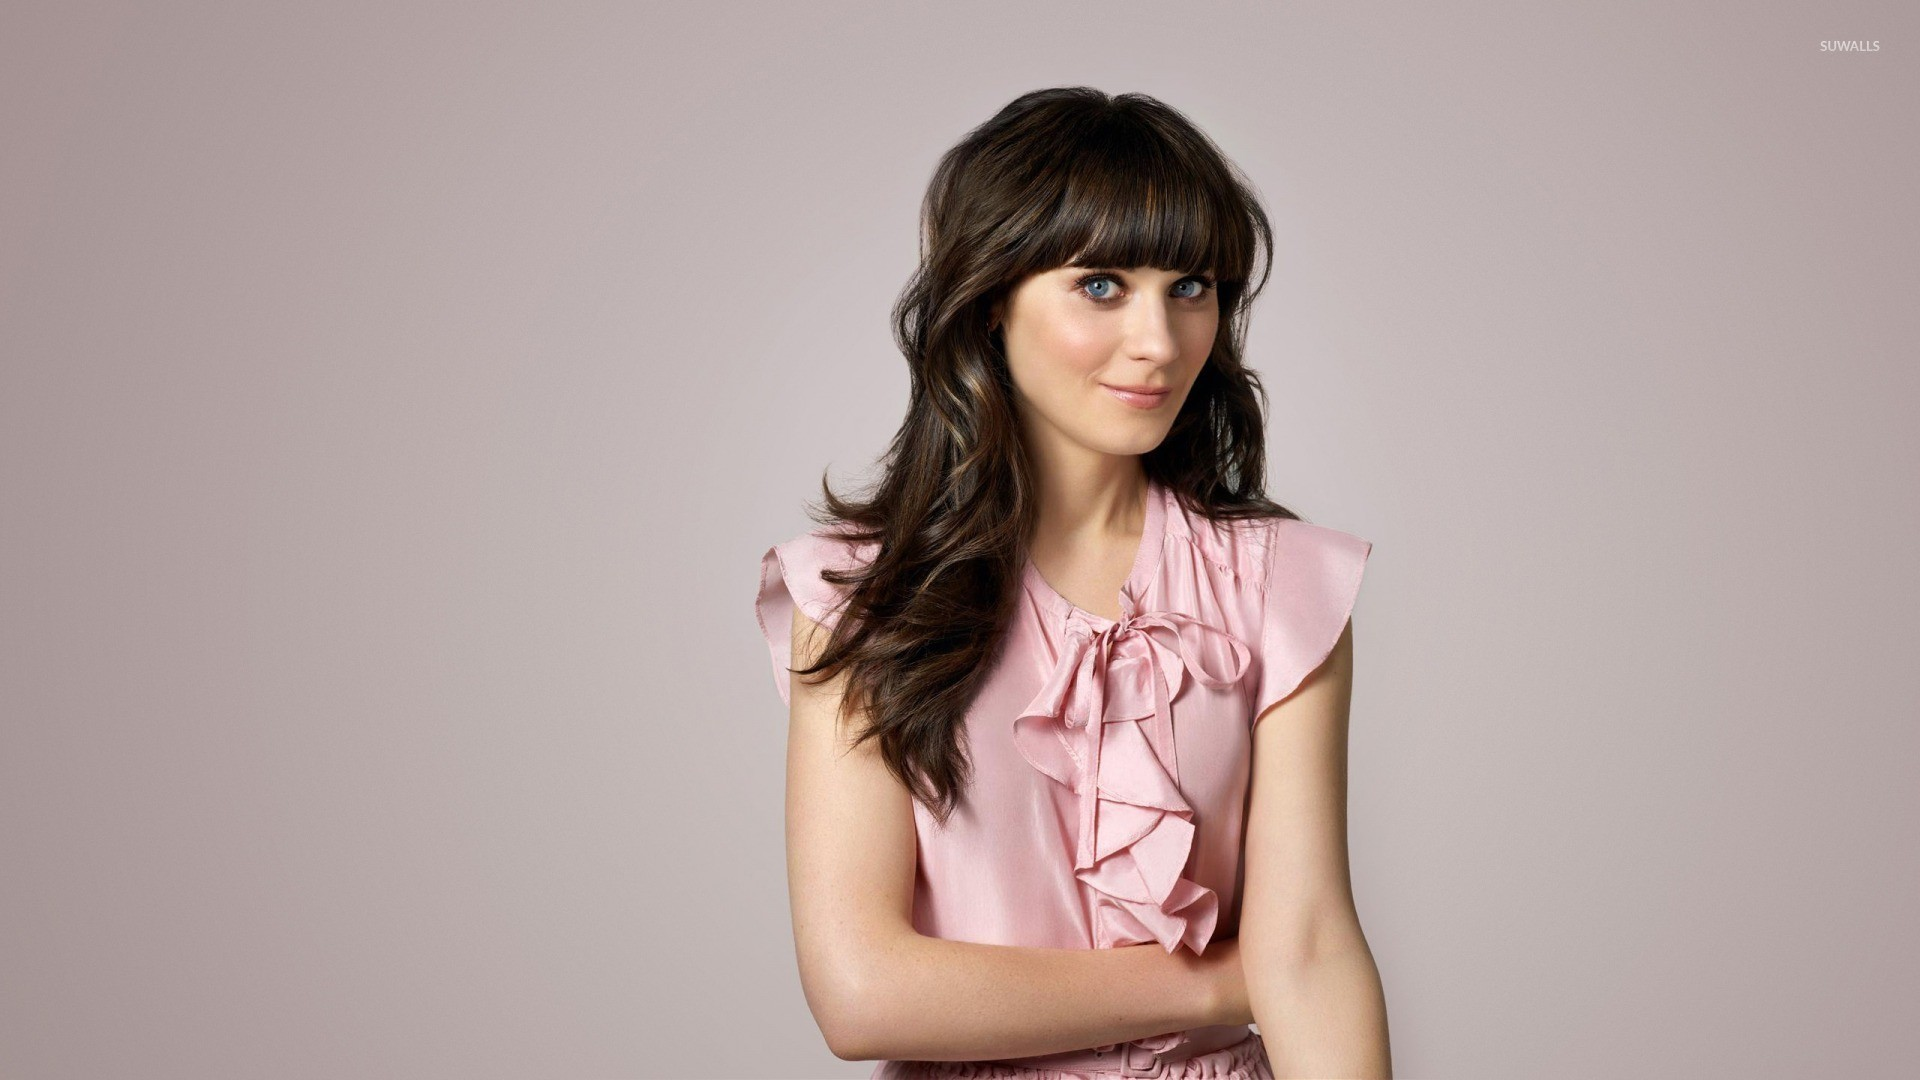 zooey deschanel hot 1920 - photo #7